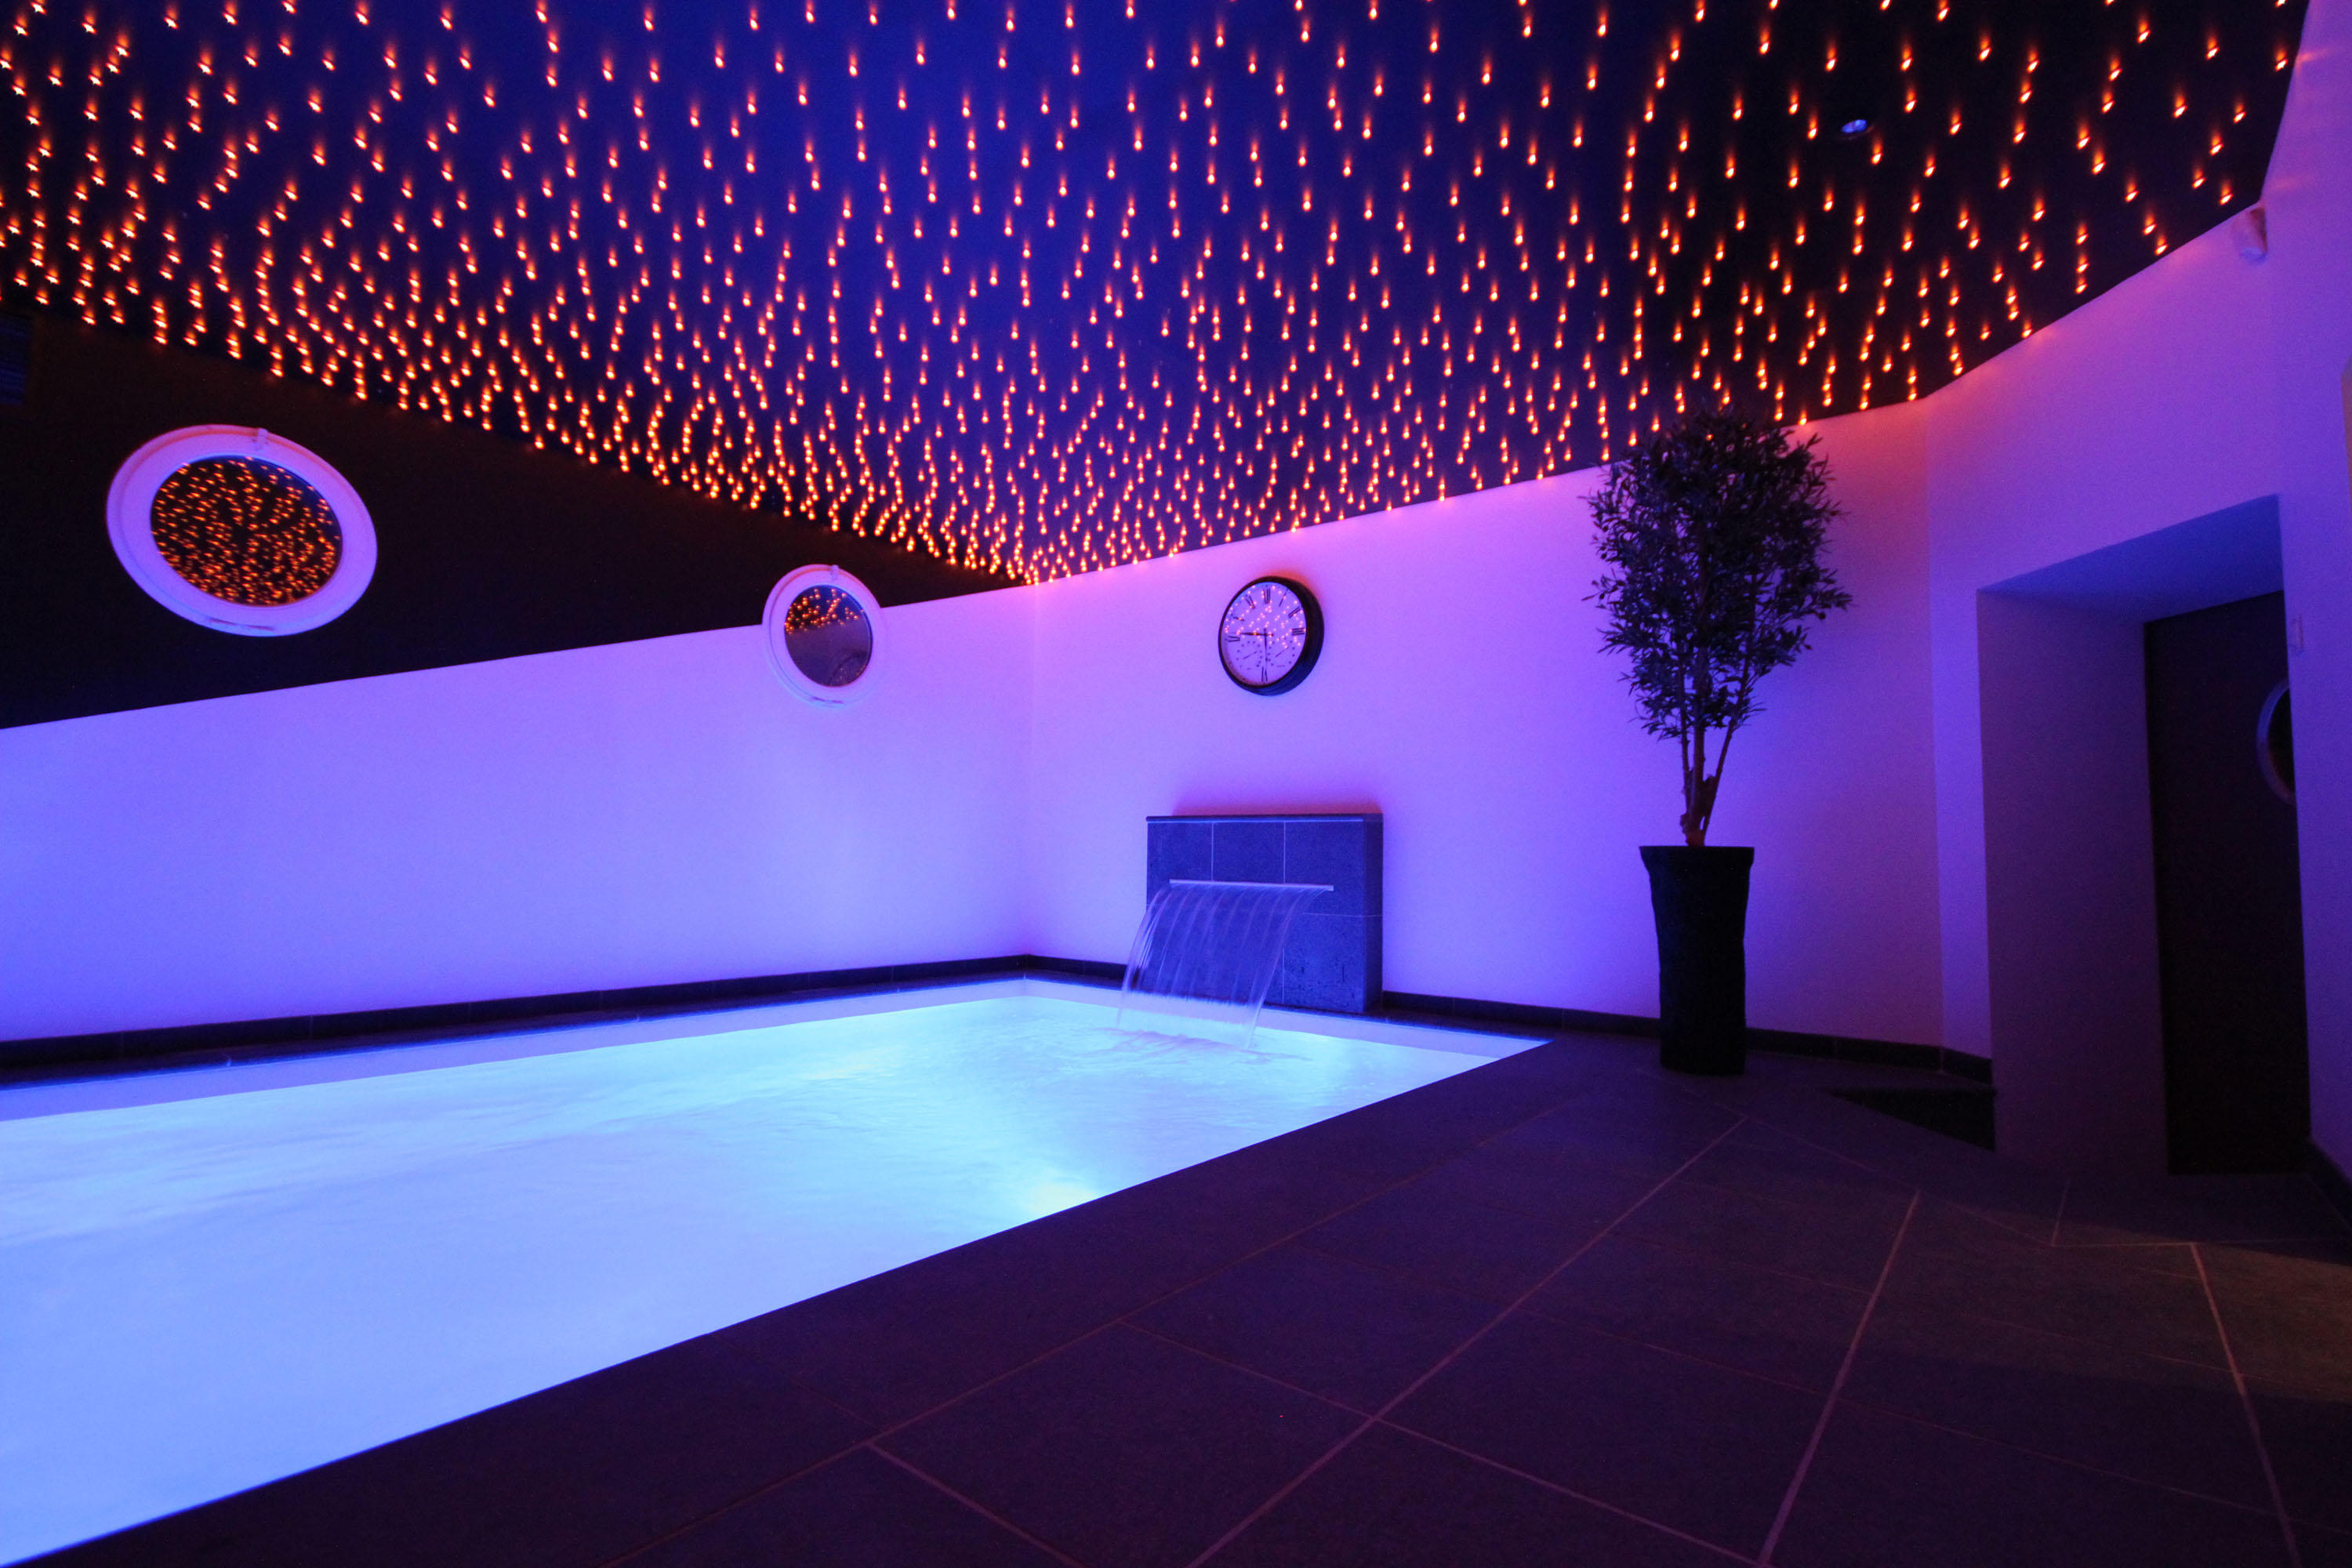 Piscine int rieure indoor pools de piscines carr bleu architonic - Piscine interieure design ...